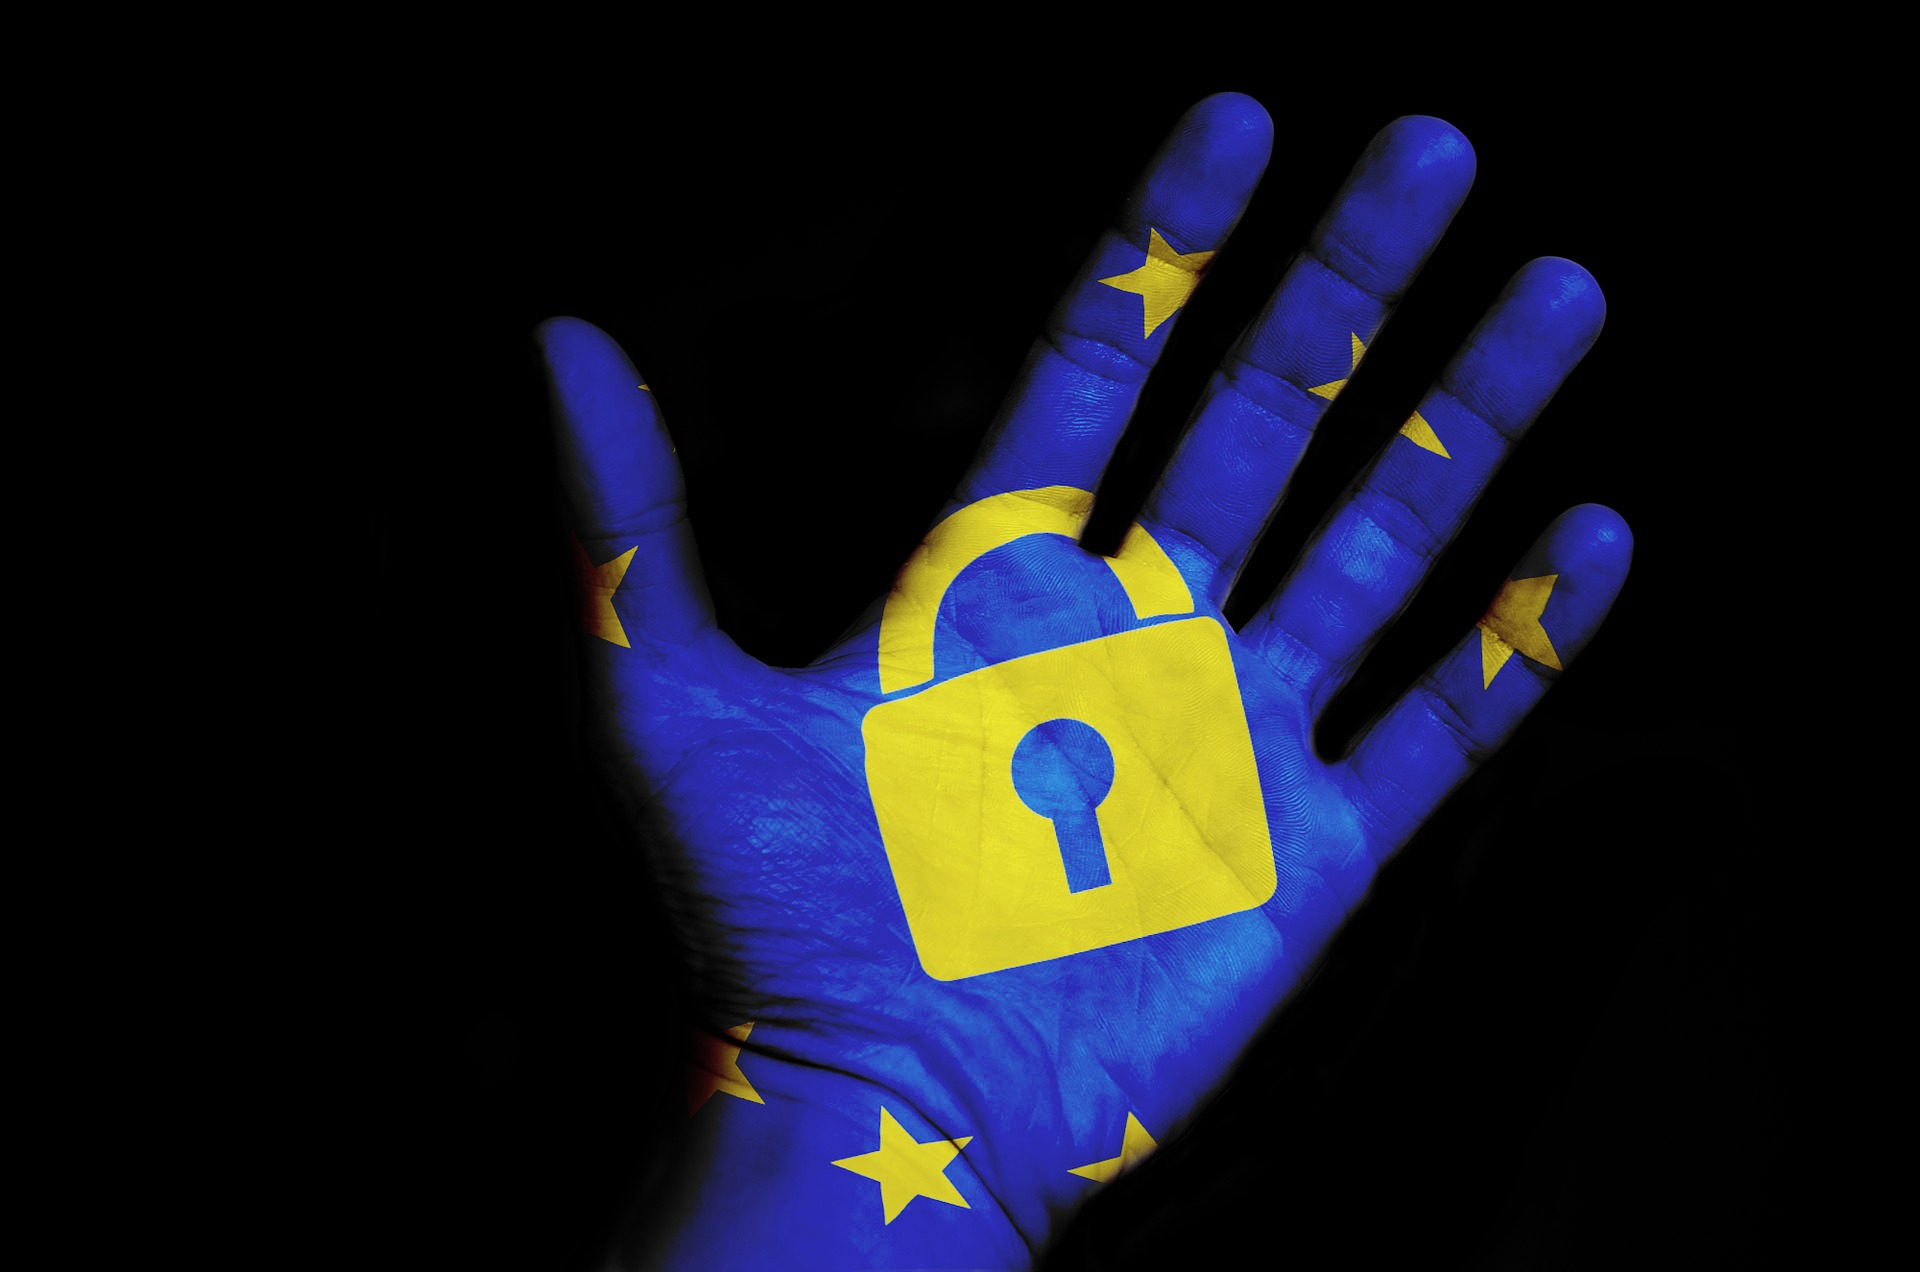 Hand Painted with European Flag in blue and yellow with a yellow padlock